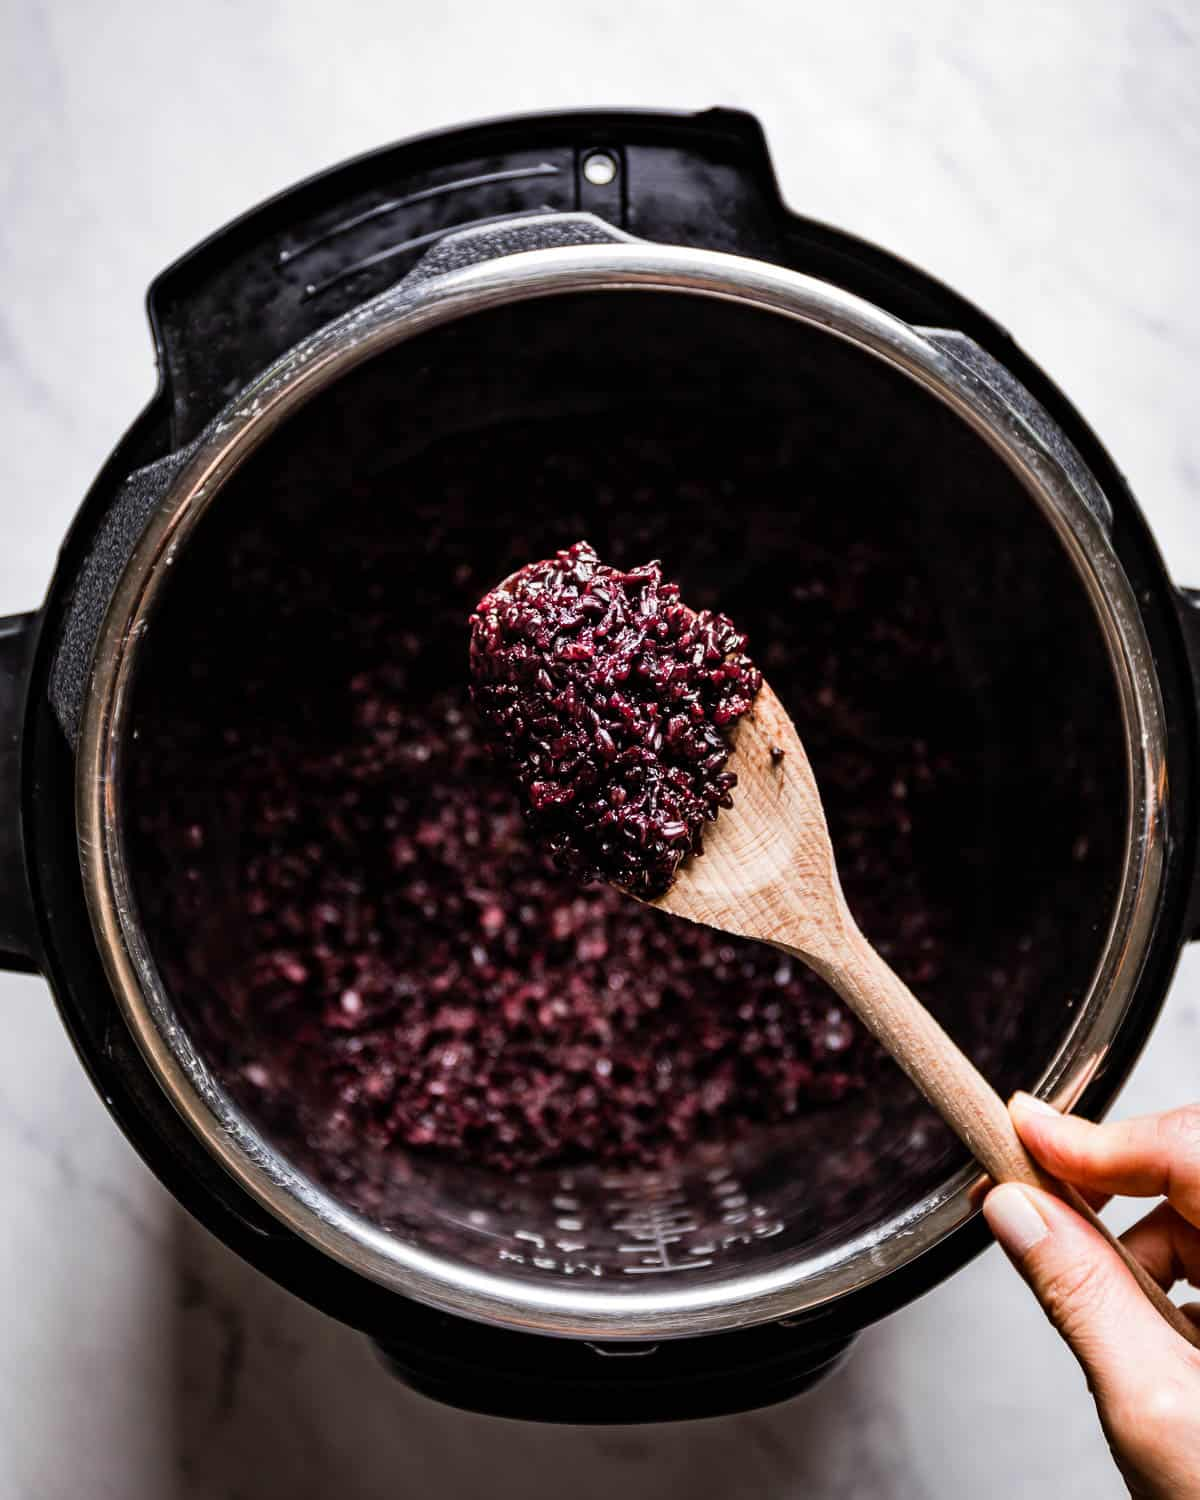 Person showing cooked black glutinous rice on a wooden spoon over pressure cooker